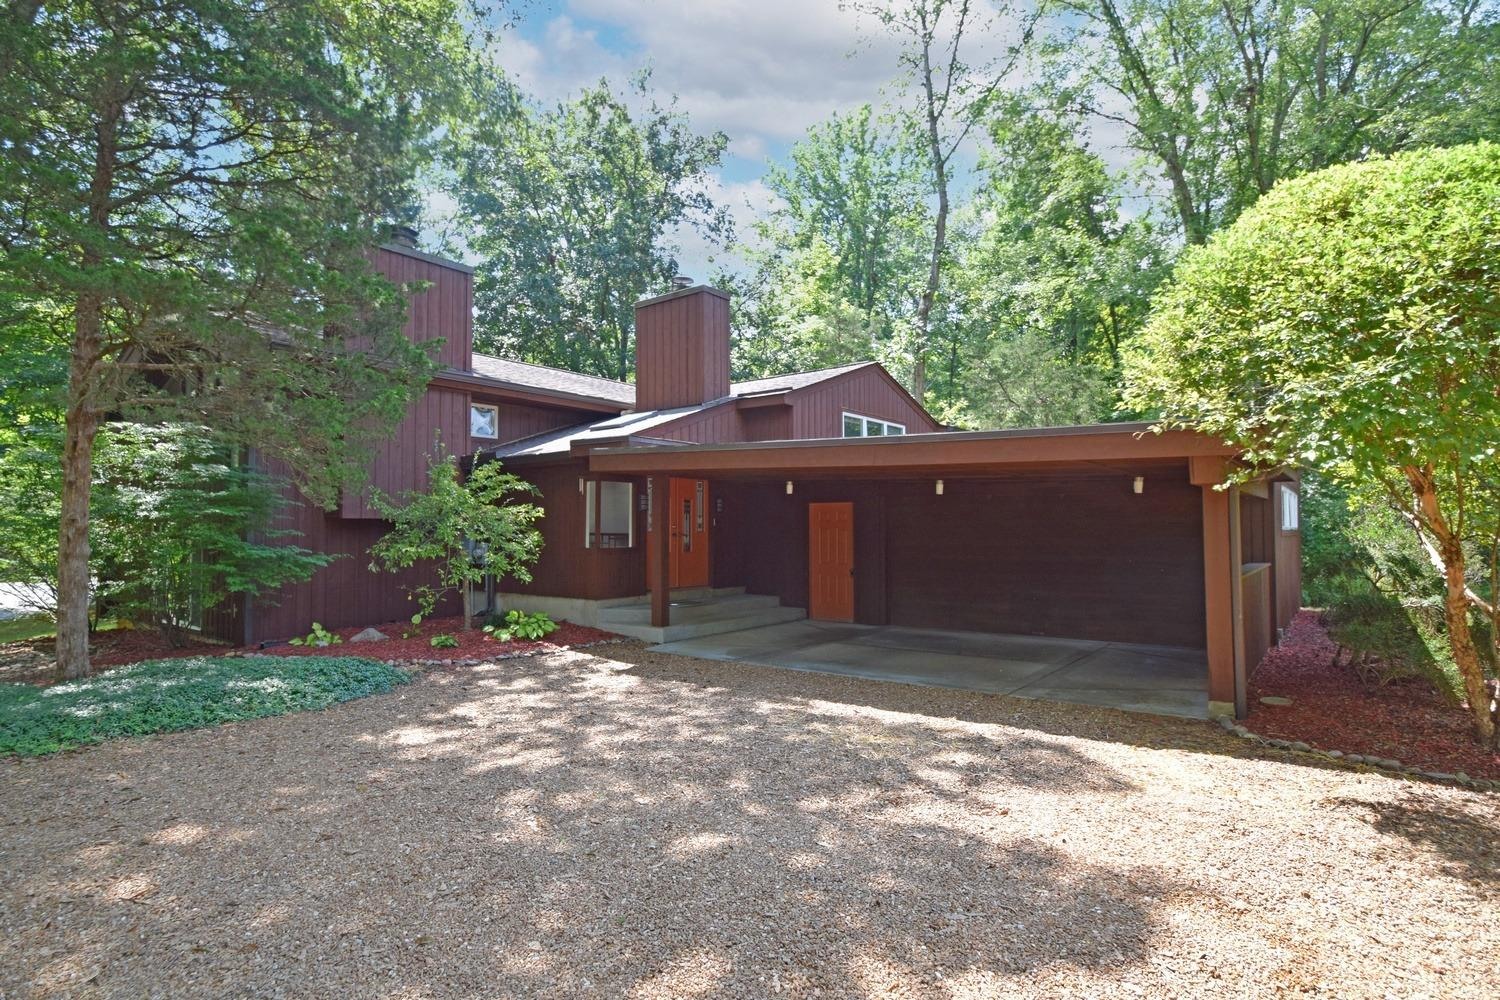 173 Dogwood Drive, Loveland, Ohio 45140, 5 Bedrooms Bedrooms, 8 Rooms Rooms,3 BathroomsBathrooms,Single Family Residence,For Sale,Dogwood,1713365